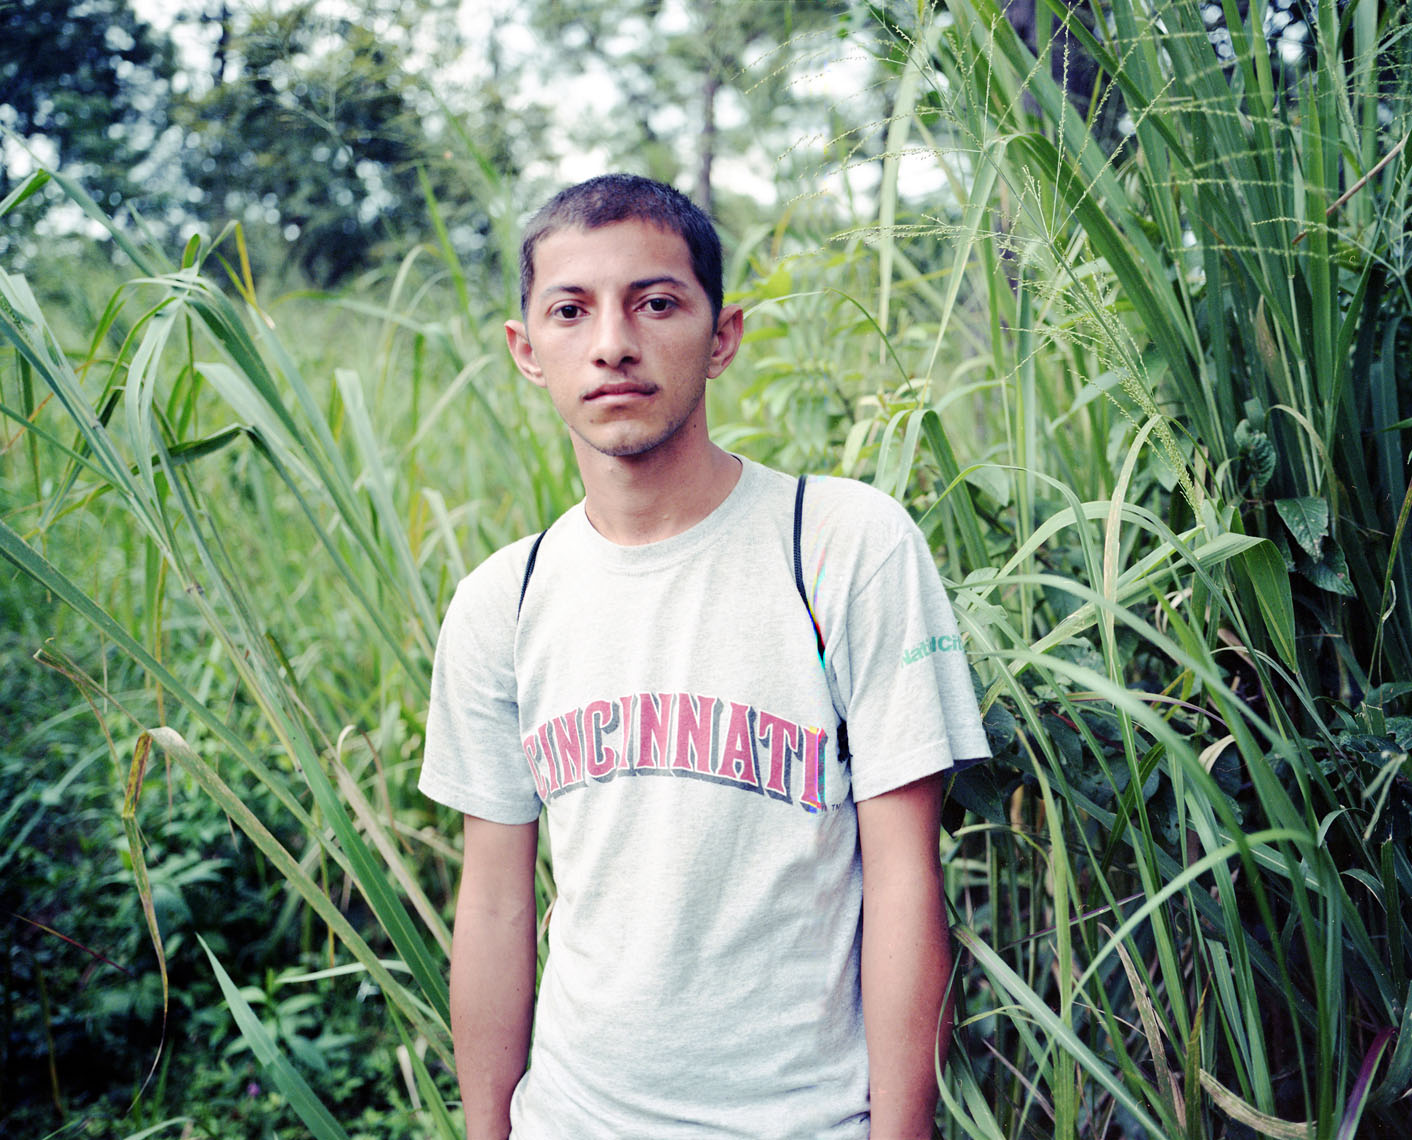 Portrait of Central American migrant